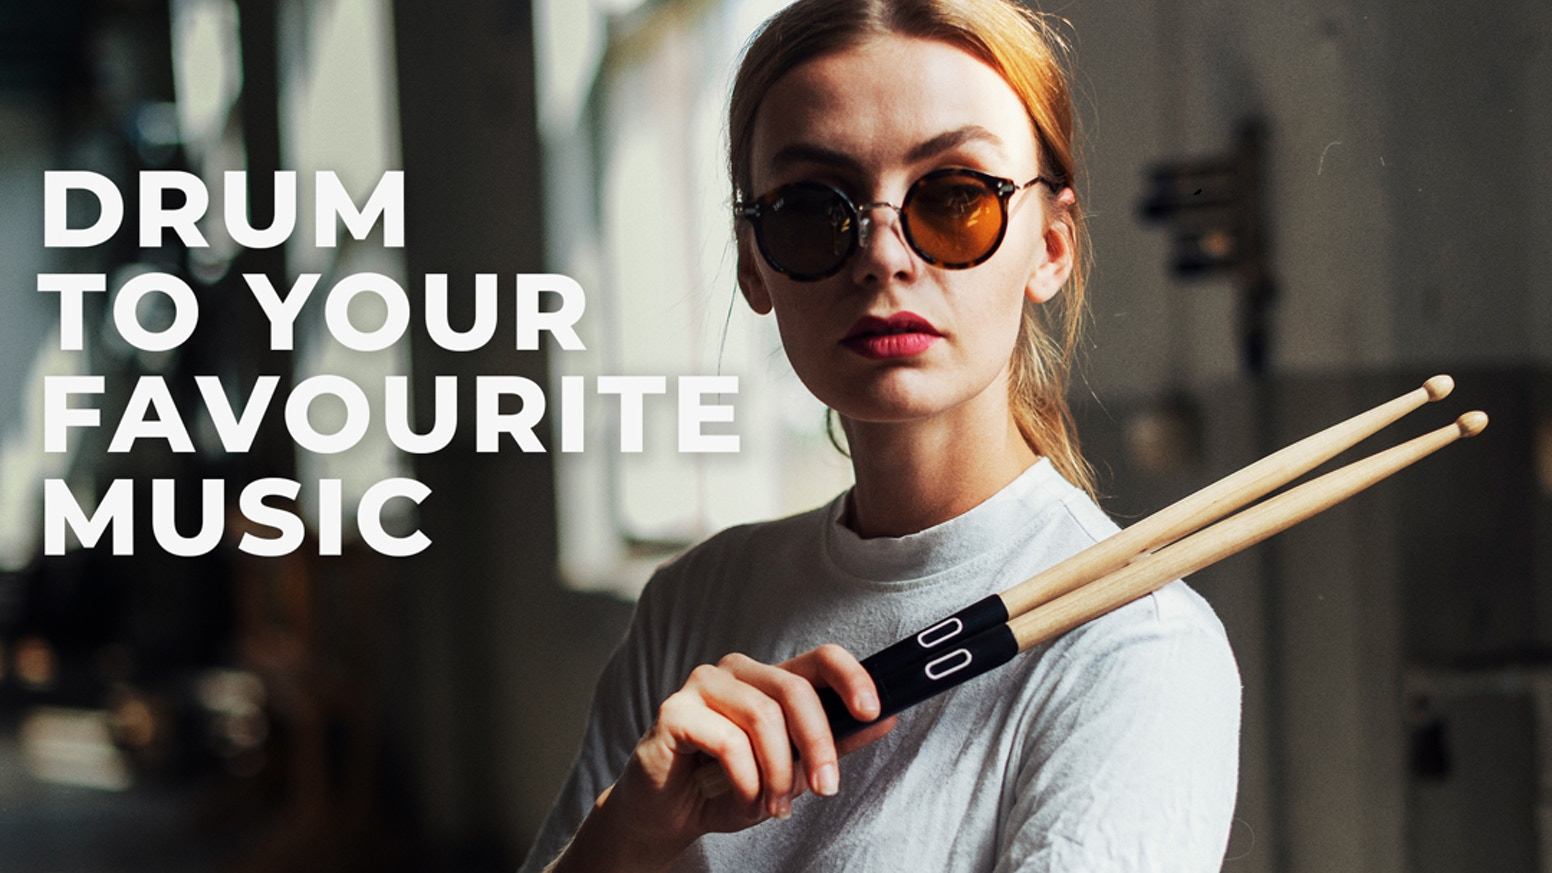 An instrument and app that will teach you to drum along to your favourite music.